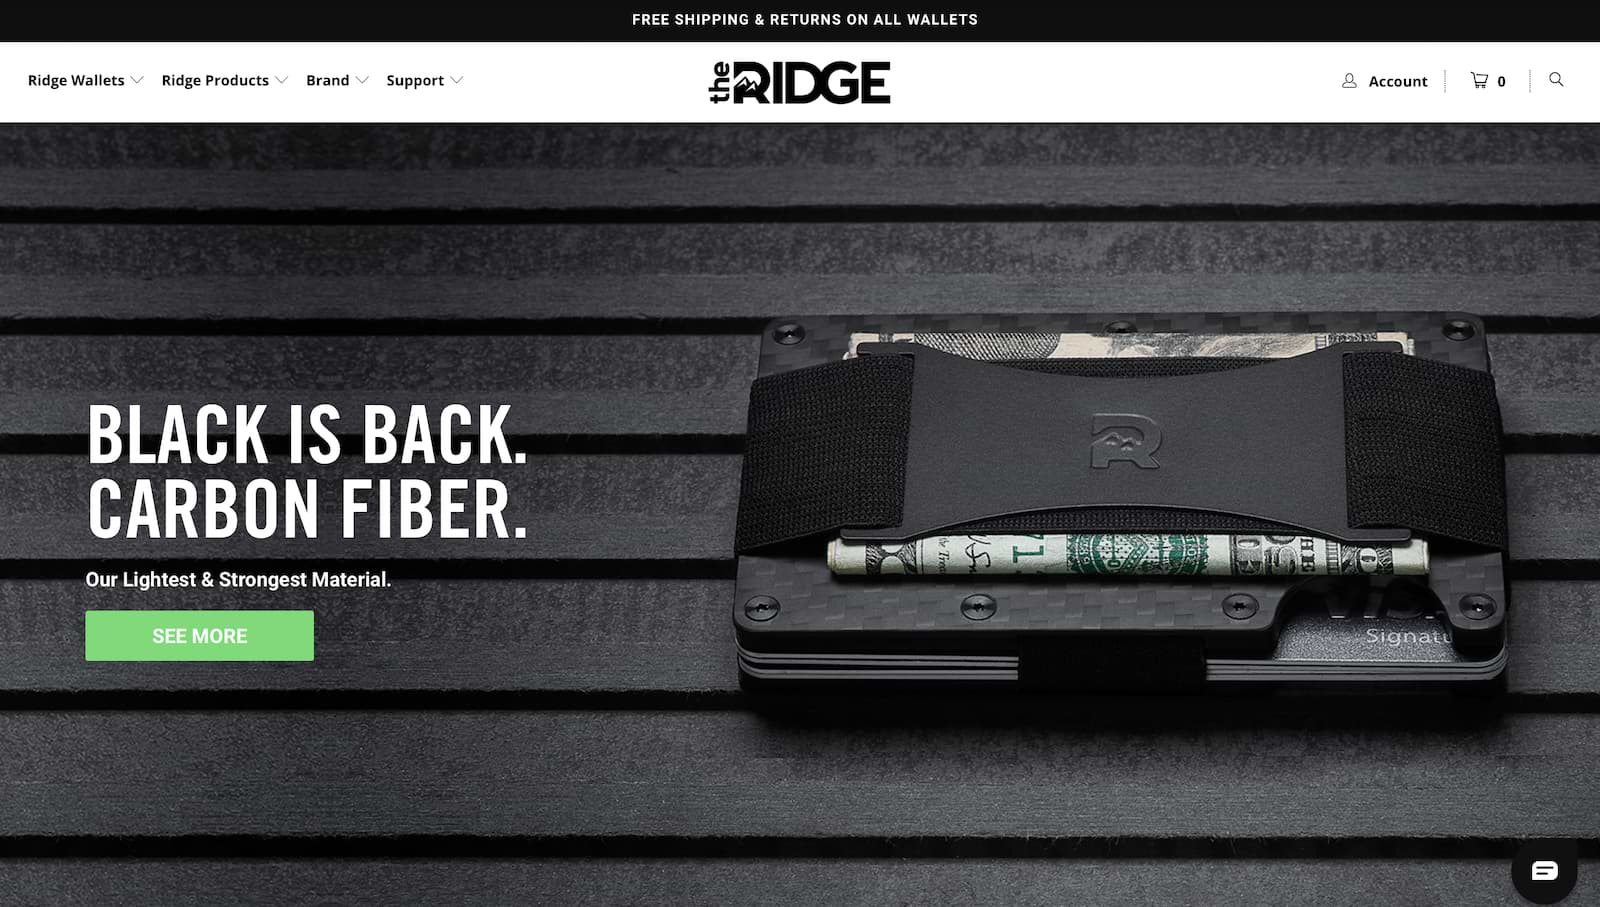 Ridge Wallets Carbon Fiber